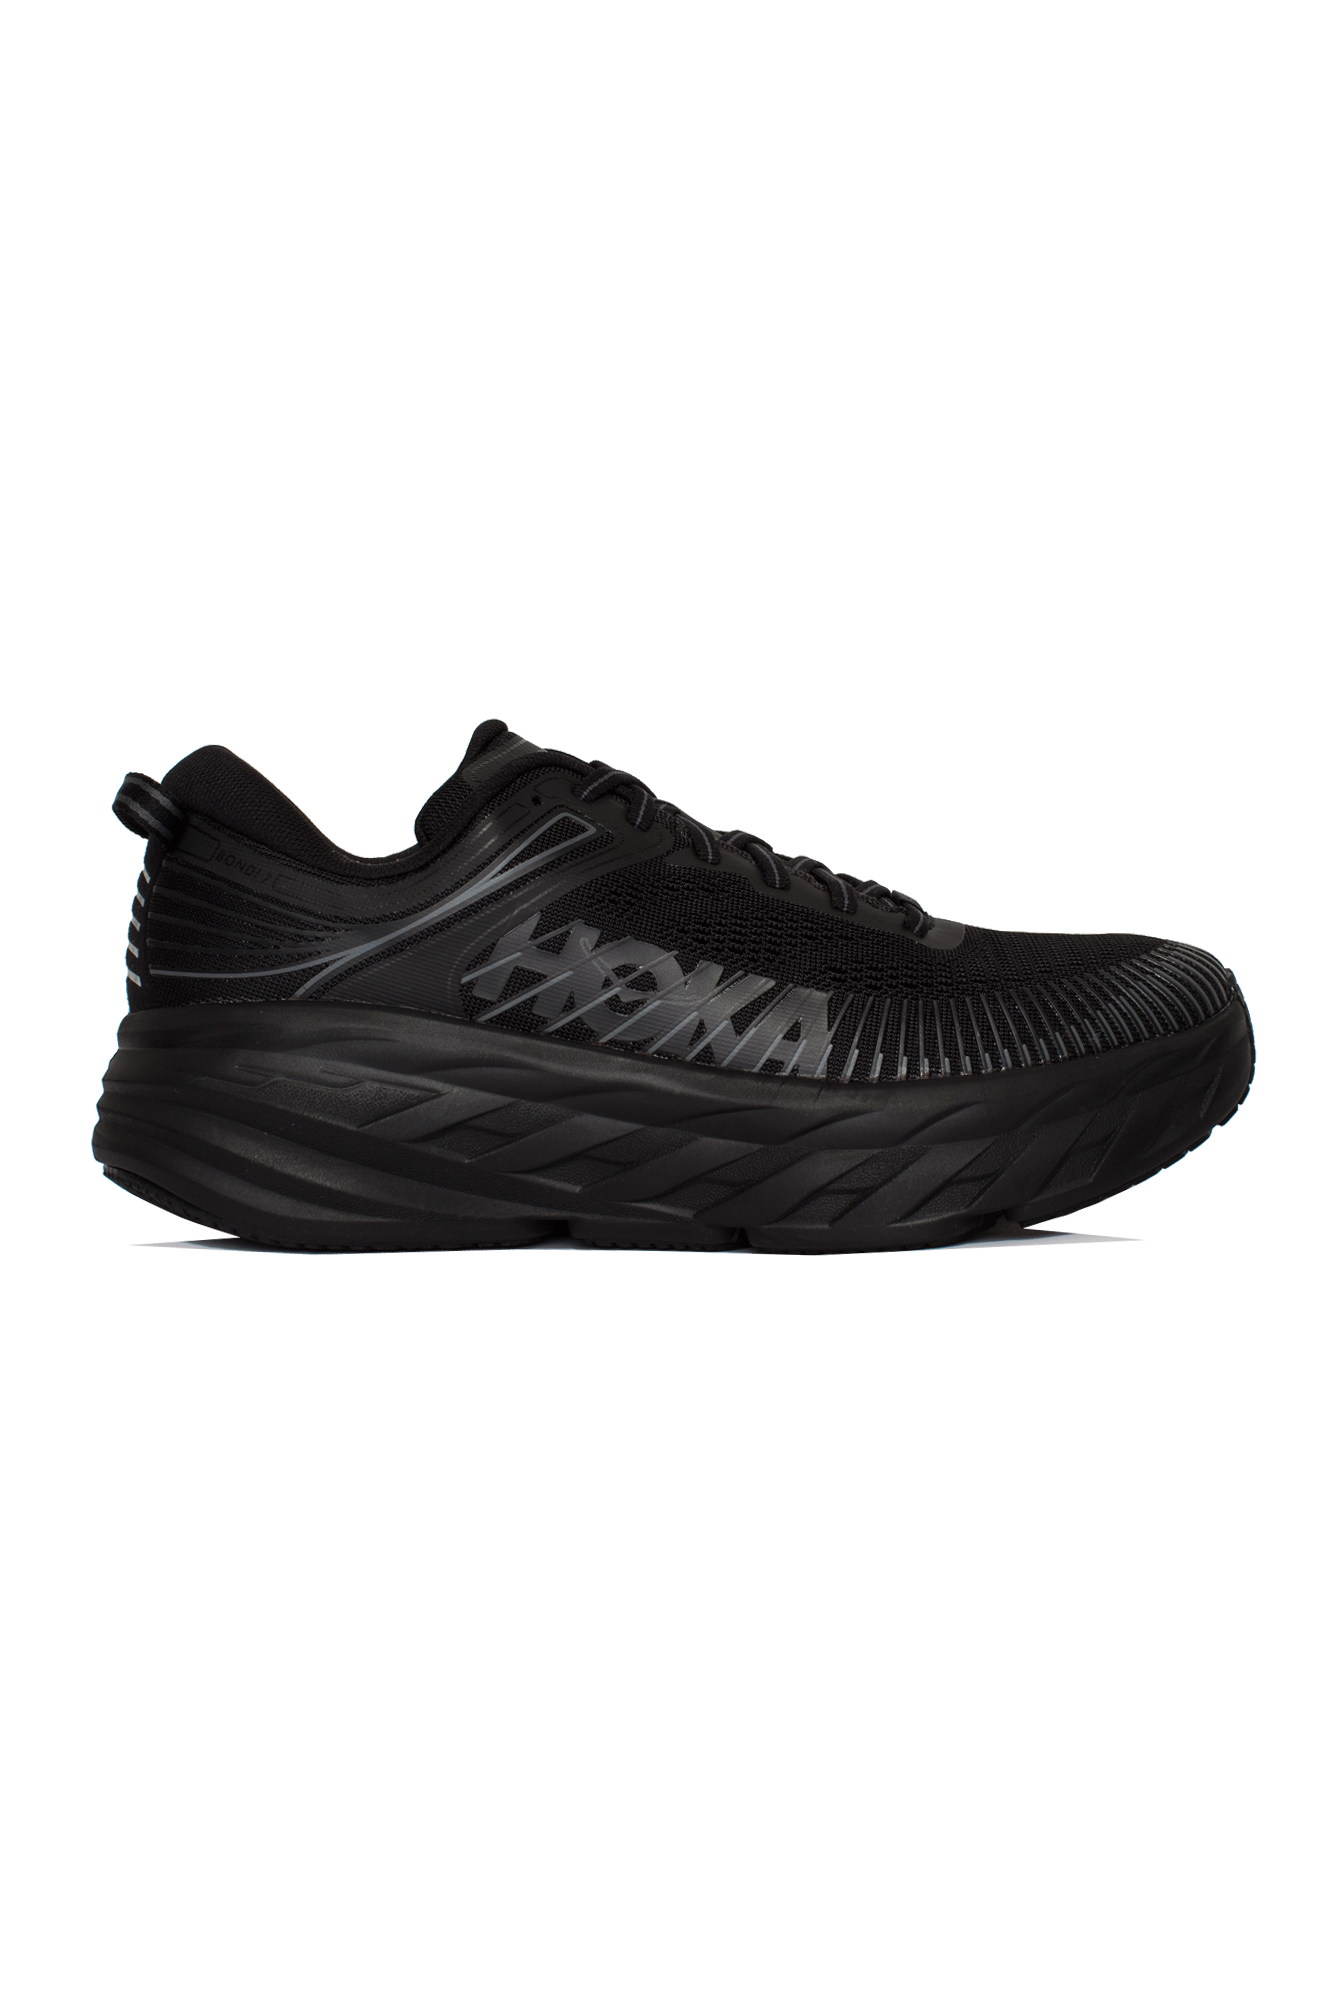 Hoka One One Sneakers Bondi 7 Nero HK.1110518#000#BBLC#7 - One Block Down